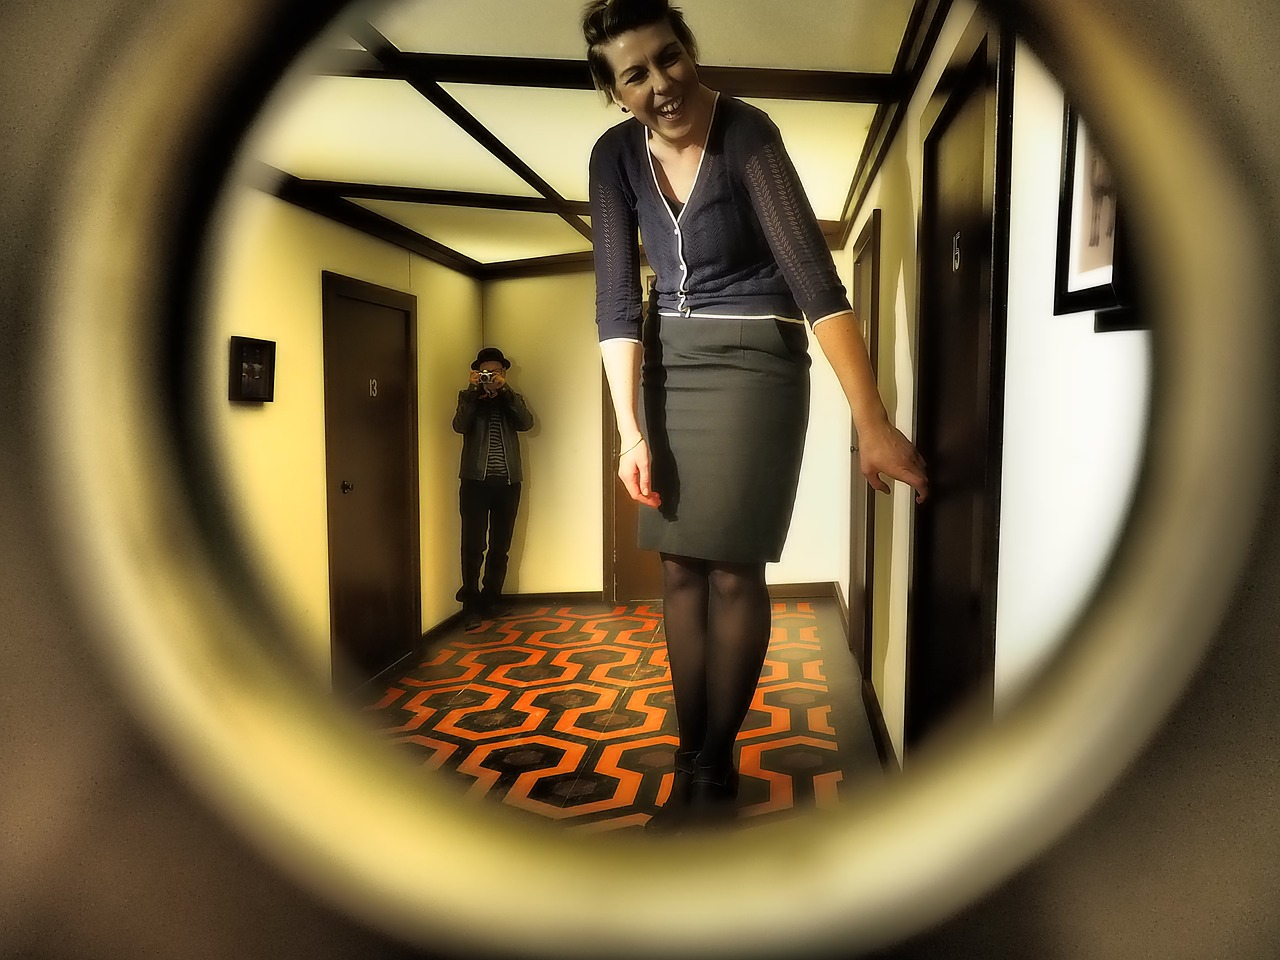 by looking peephole voyeur free photo